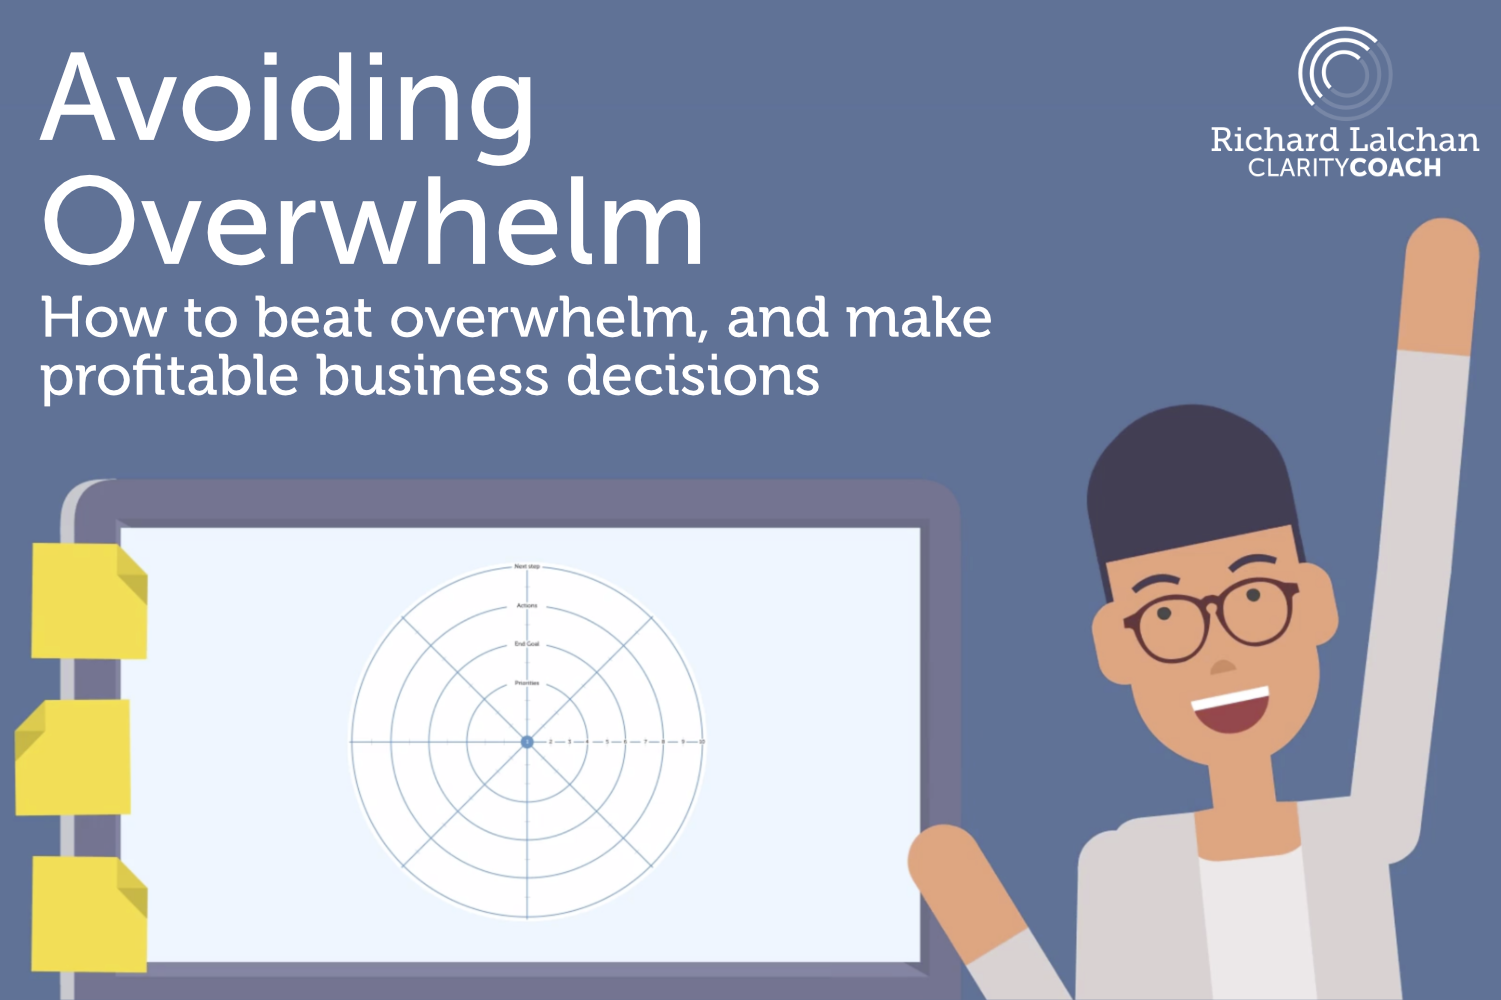 Avoiding Overwhelm - Workshop Image 1000px width.png